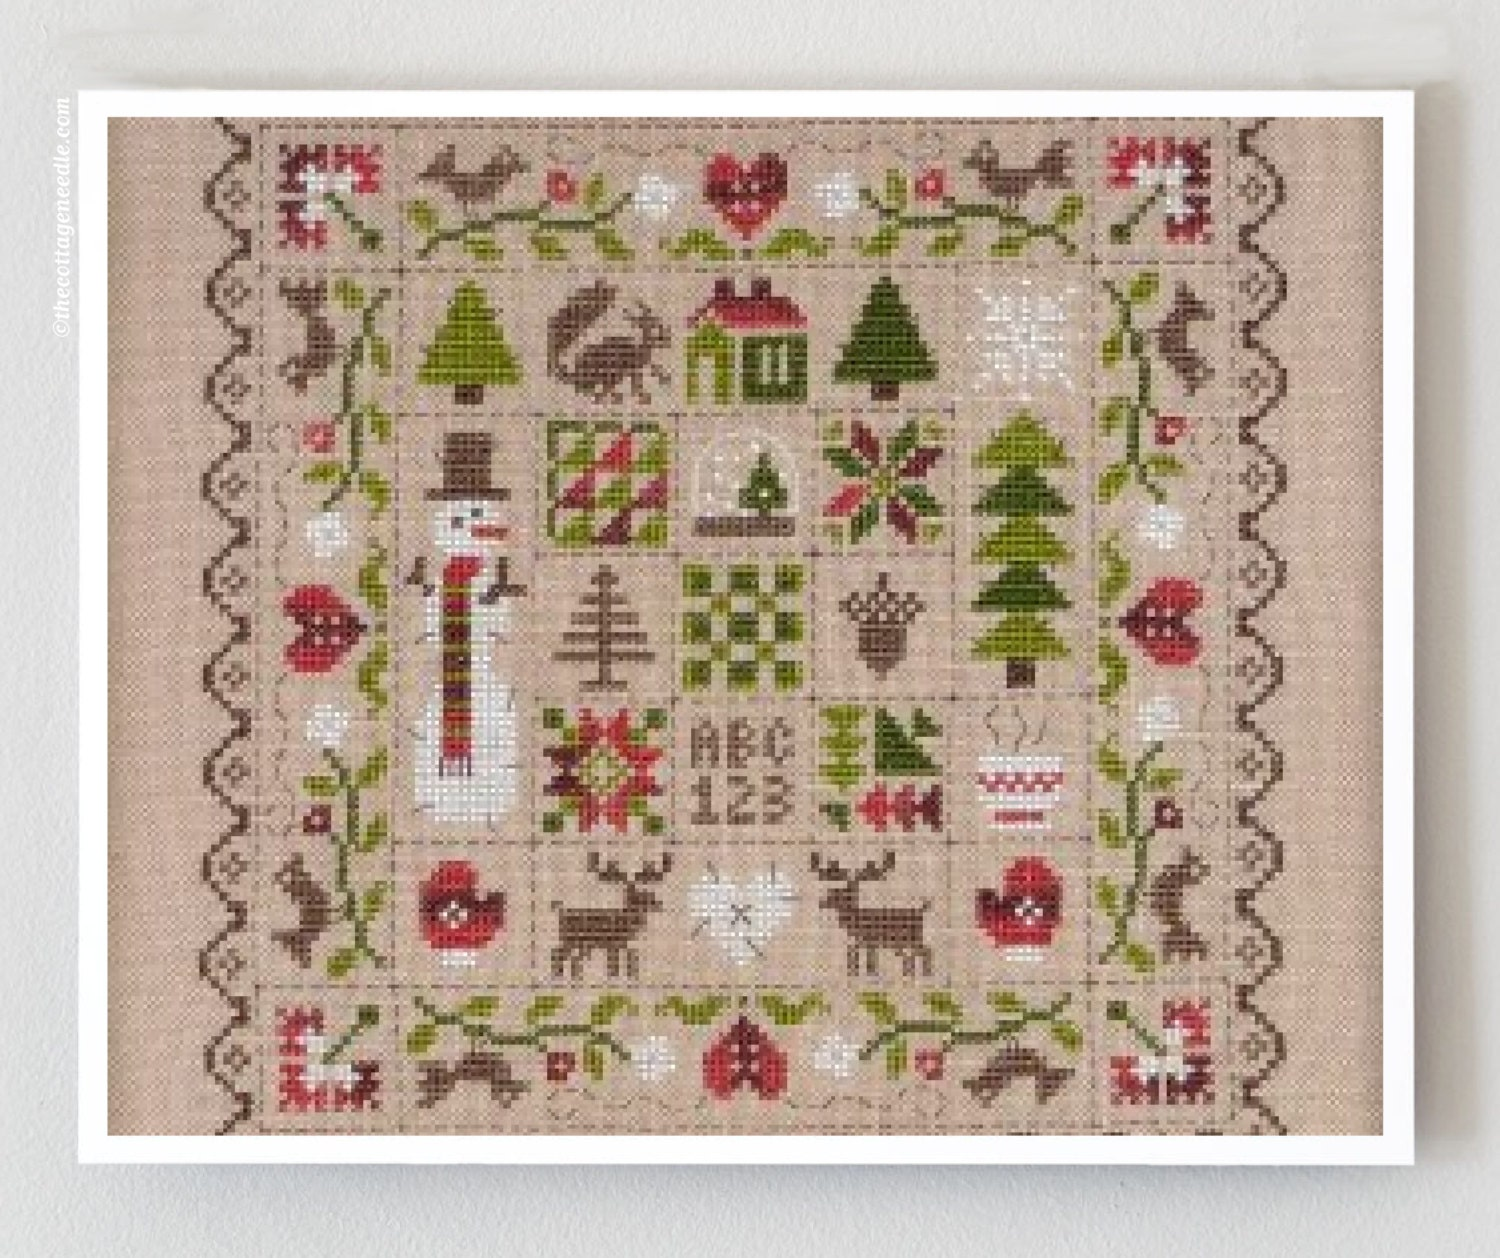 Patchwork hiver counted cross stitch patterns jardin prive for Jardin prive